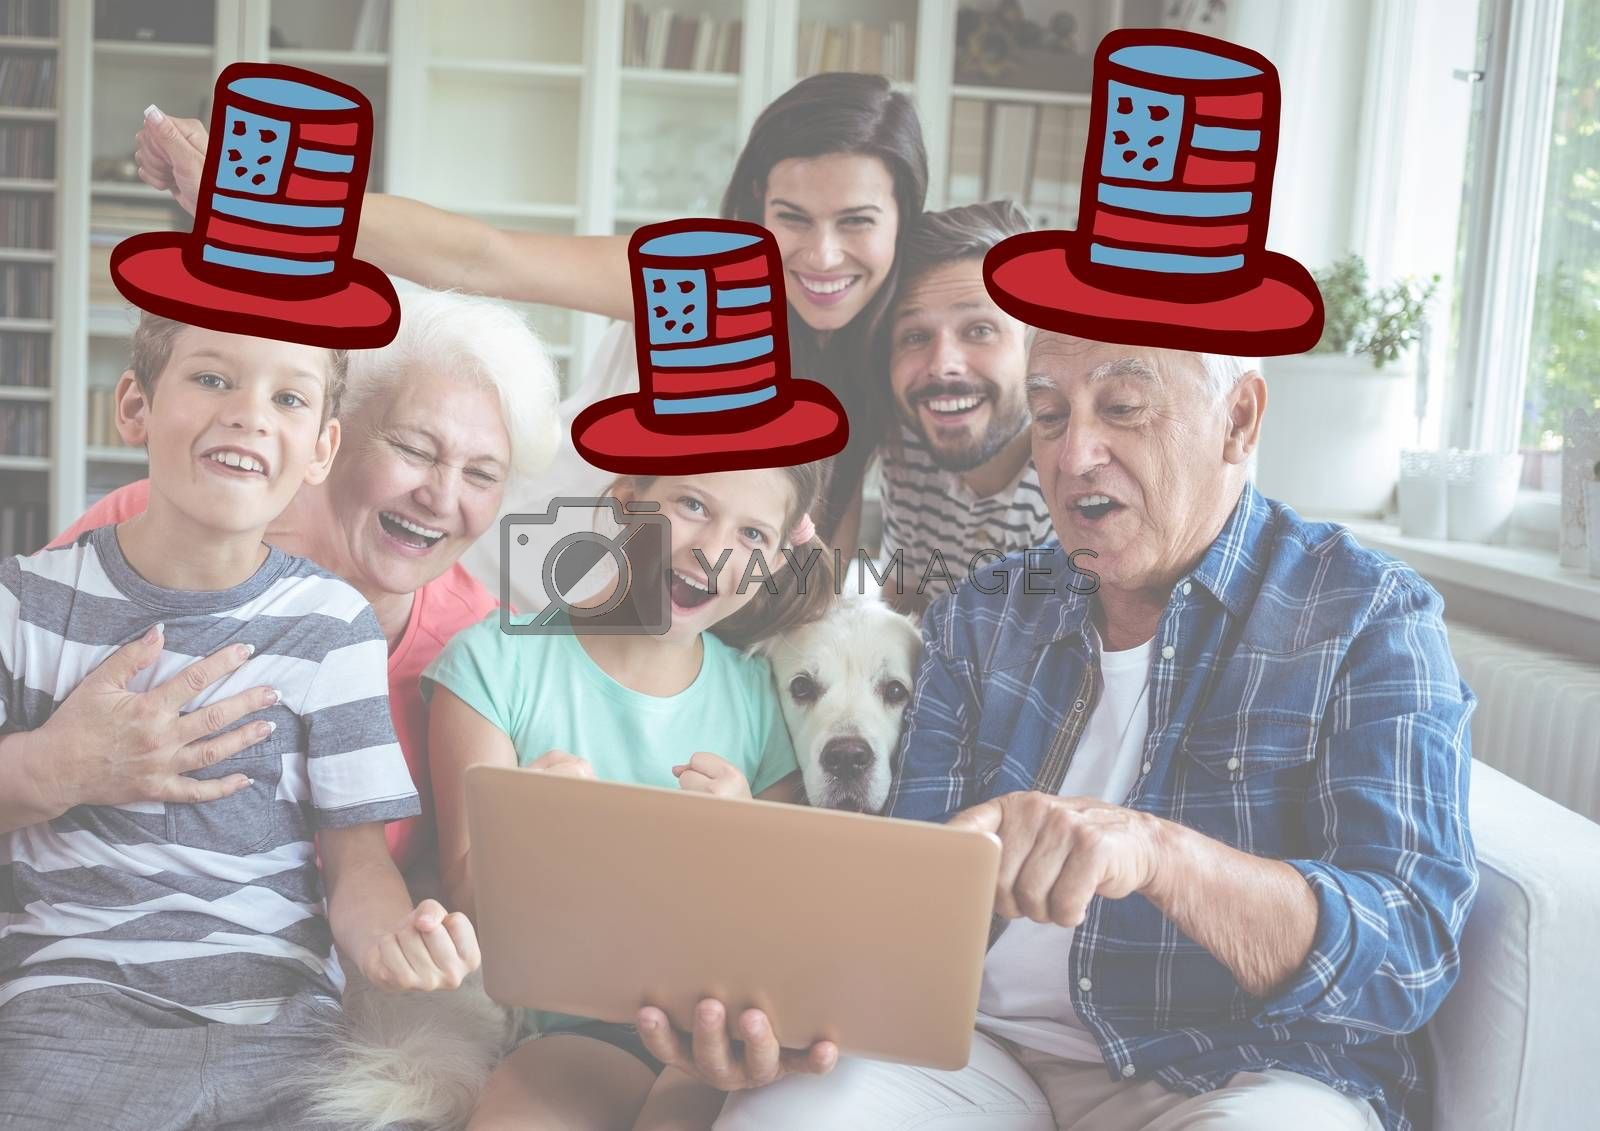 Royalty free image of Composite image of a family watching at the digital tablet with 4th of july hats by Wavebreakmedia